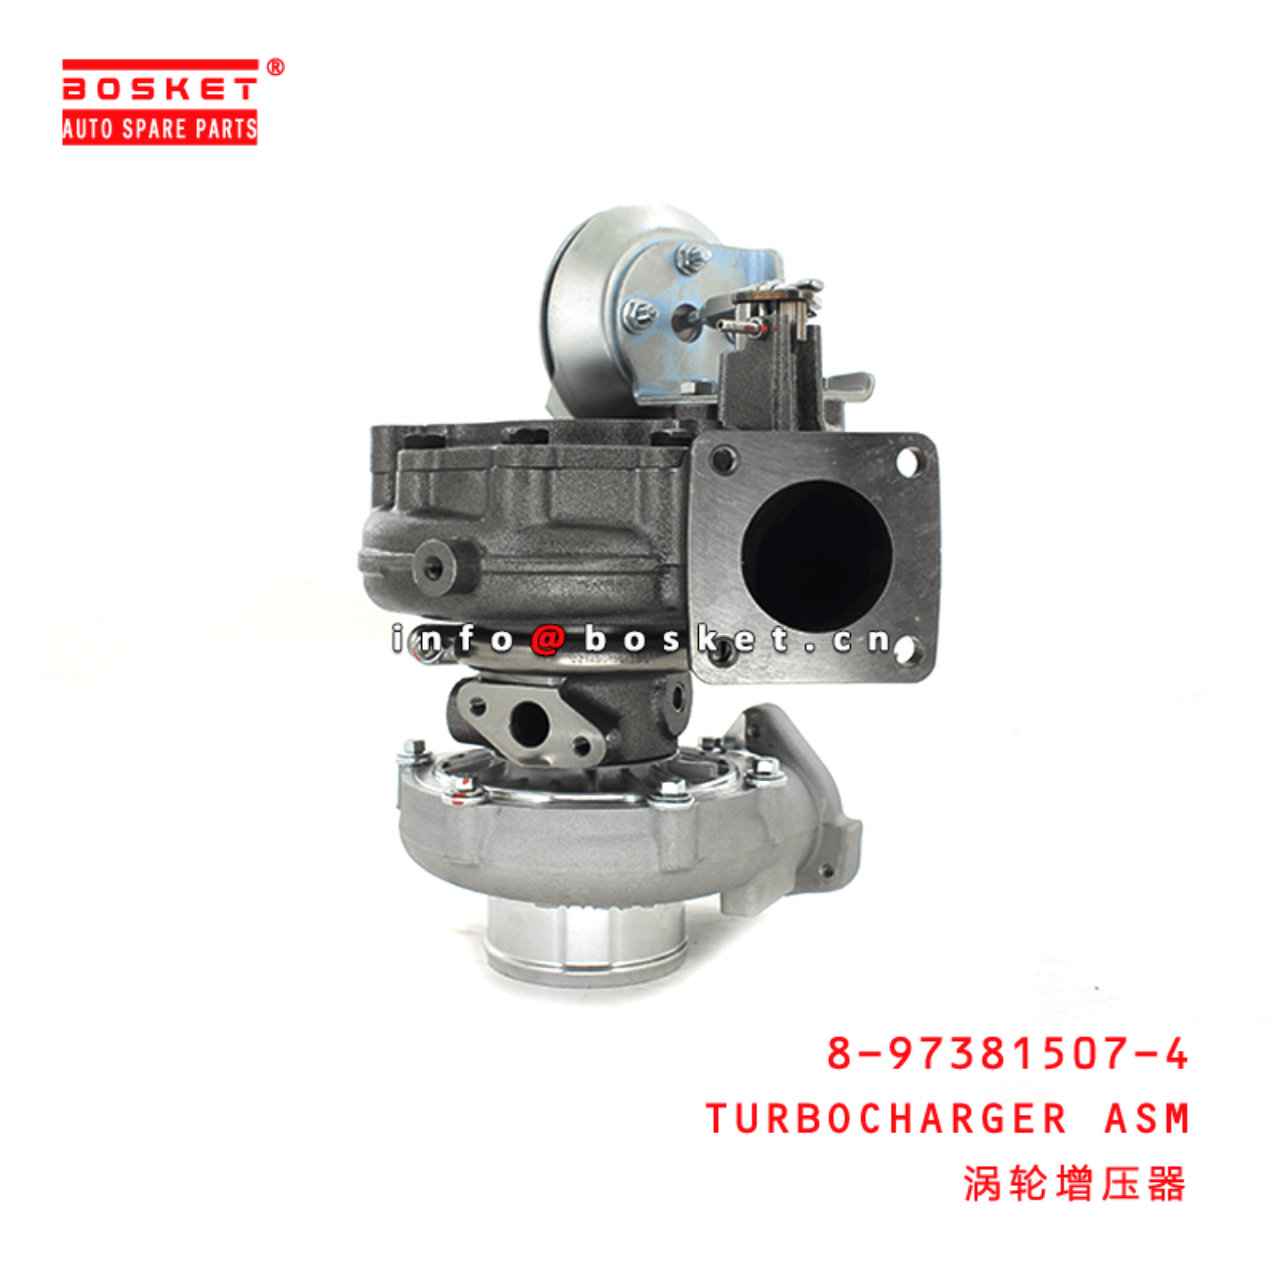 8-97381507-4 Turbocharger Assembly 8973815074 Suitable for ISUZU NLR NMR 55,85(RHD)